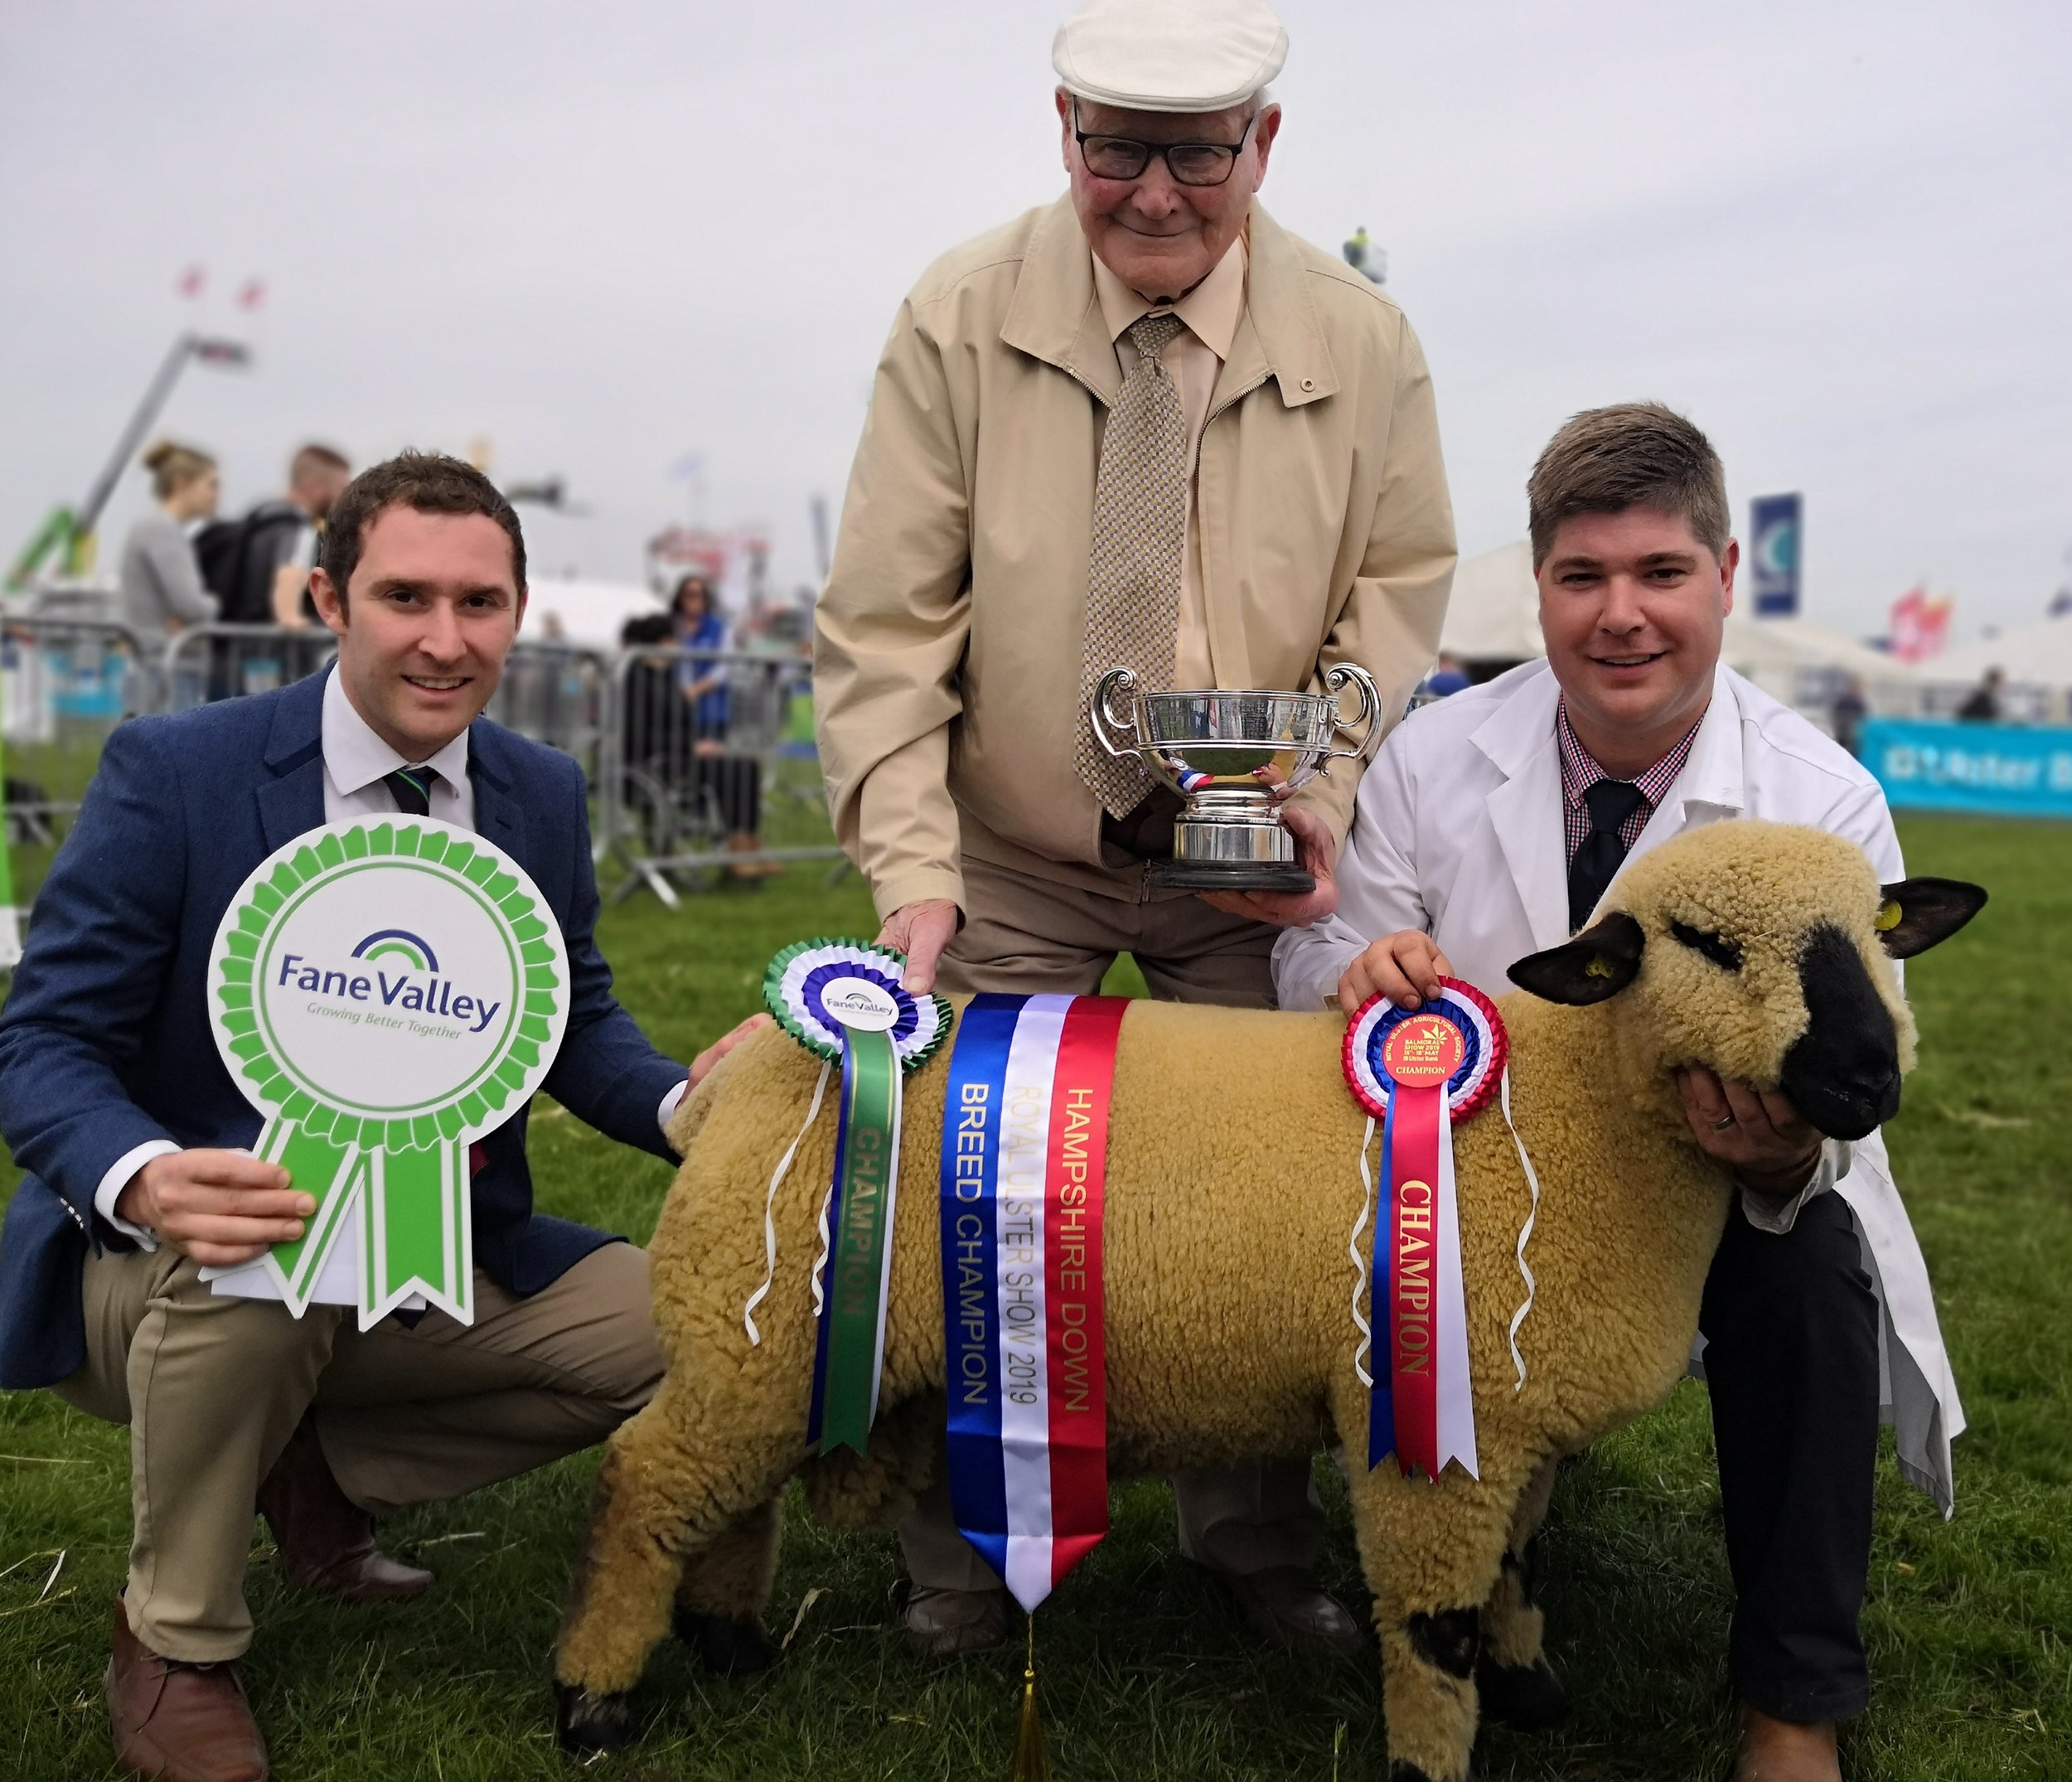 Breed Champion Brian Kennedy with sponsors and judge. Ram Lamb from CHERRYFIELD FLOCK